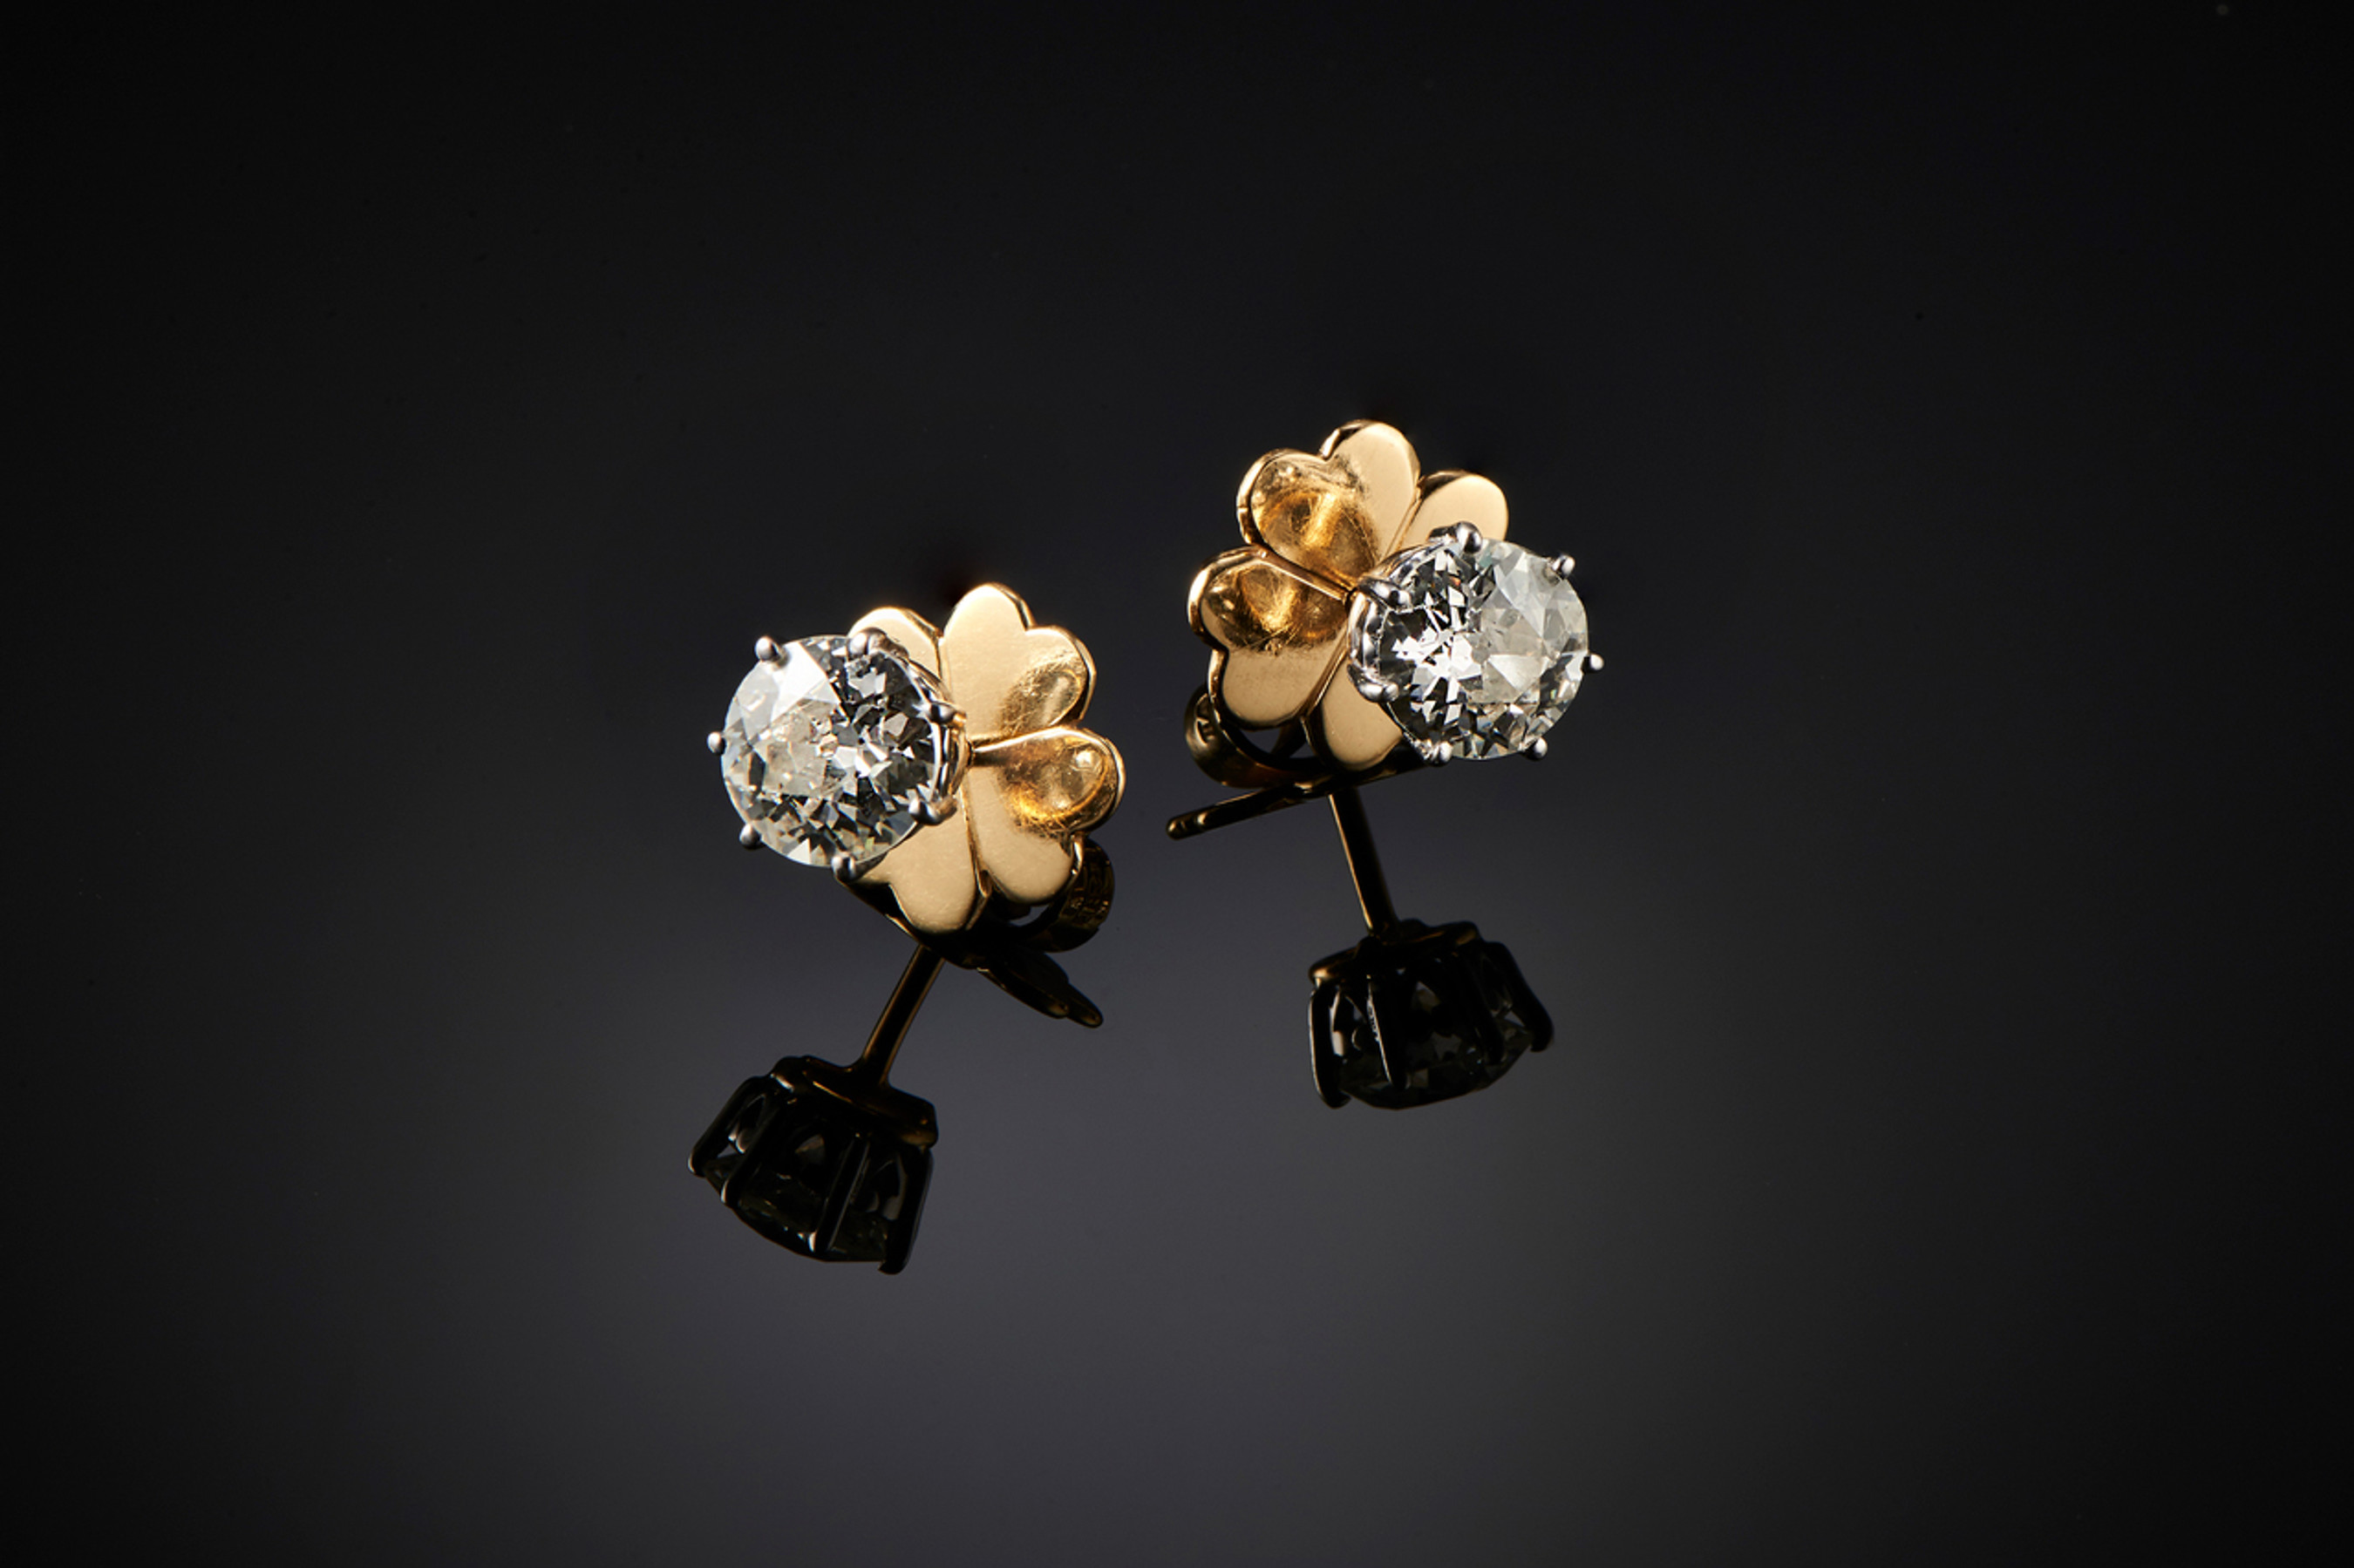 Stunning Pair of Diamond Stud Earrings by Kozminsky. - Front Image